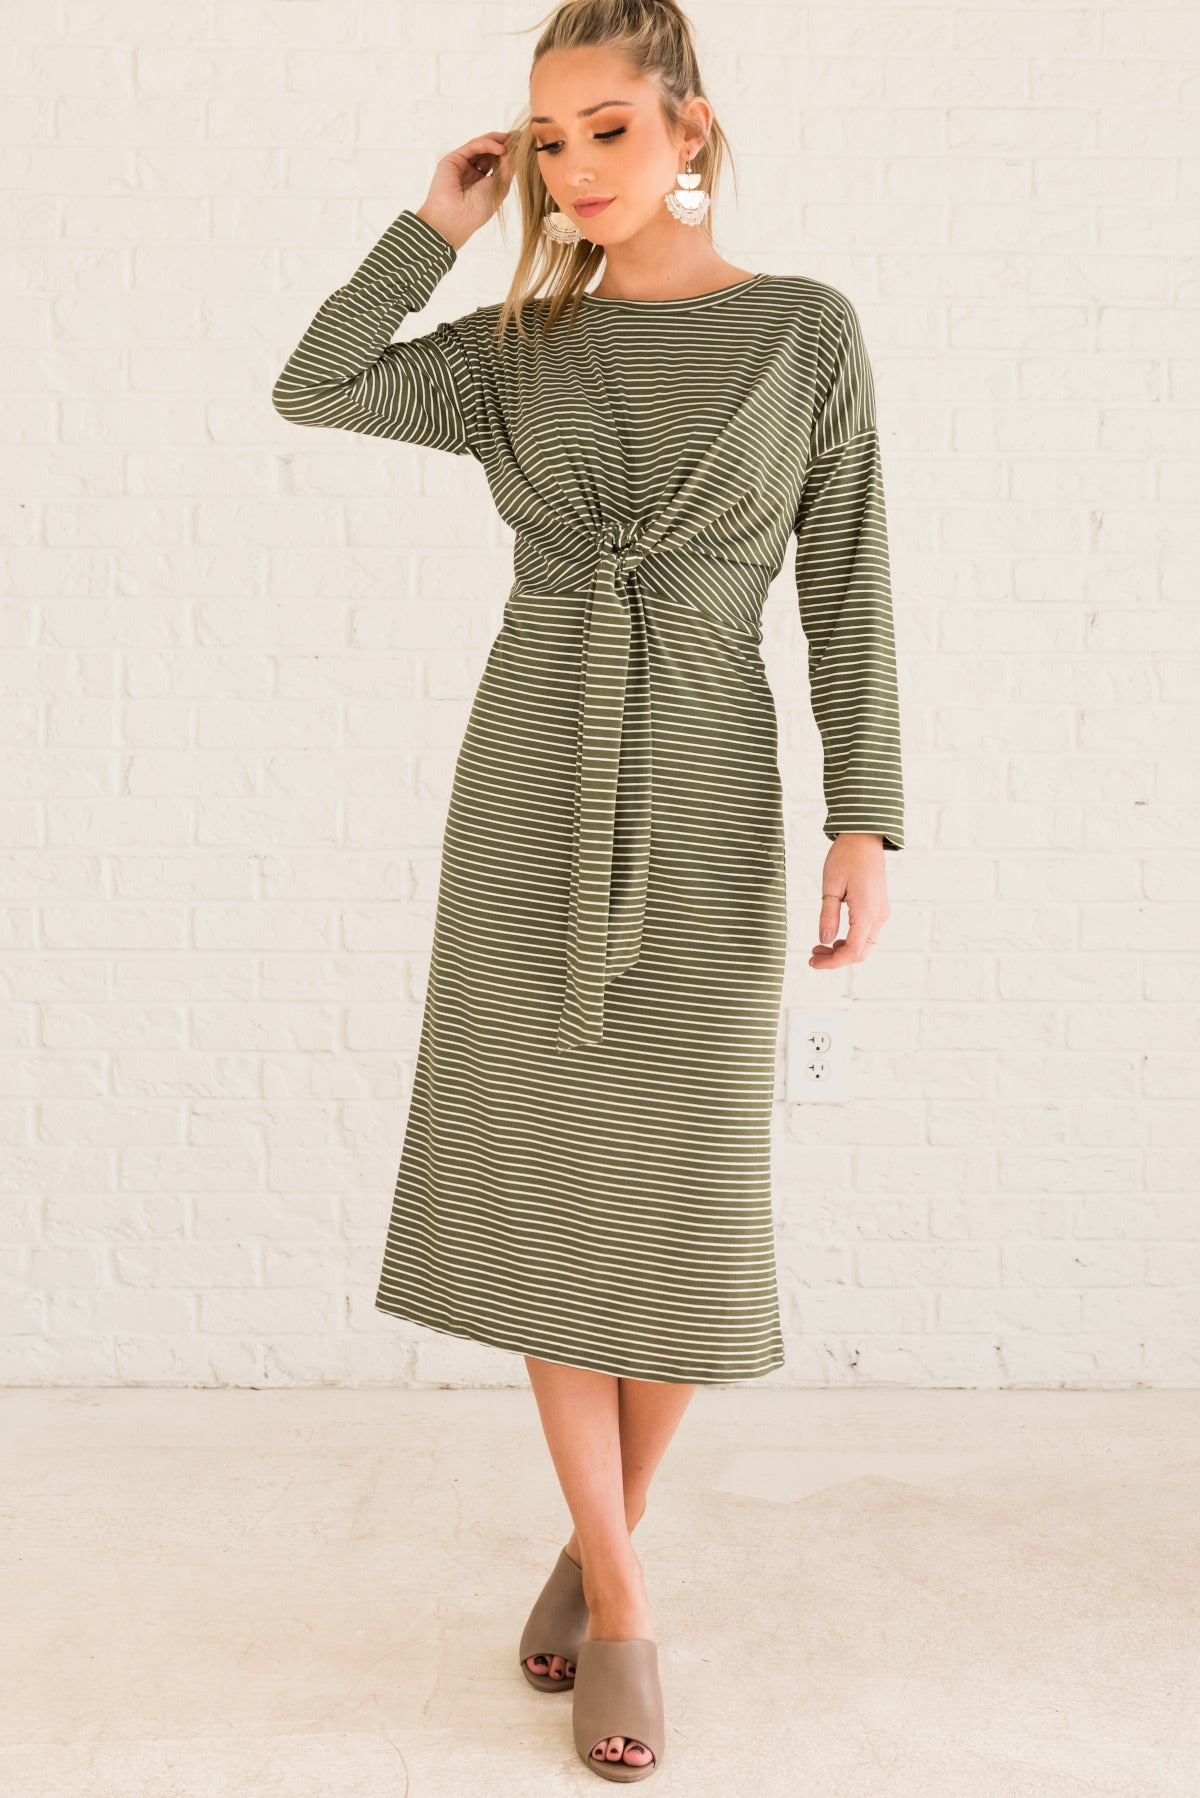 Olive Green and White Striped Tie Front Boutique Dresses for Women